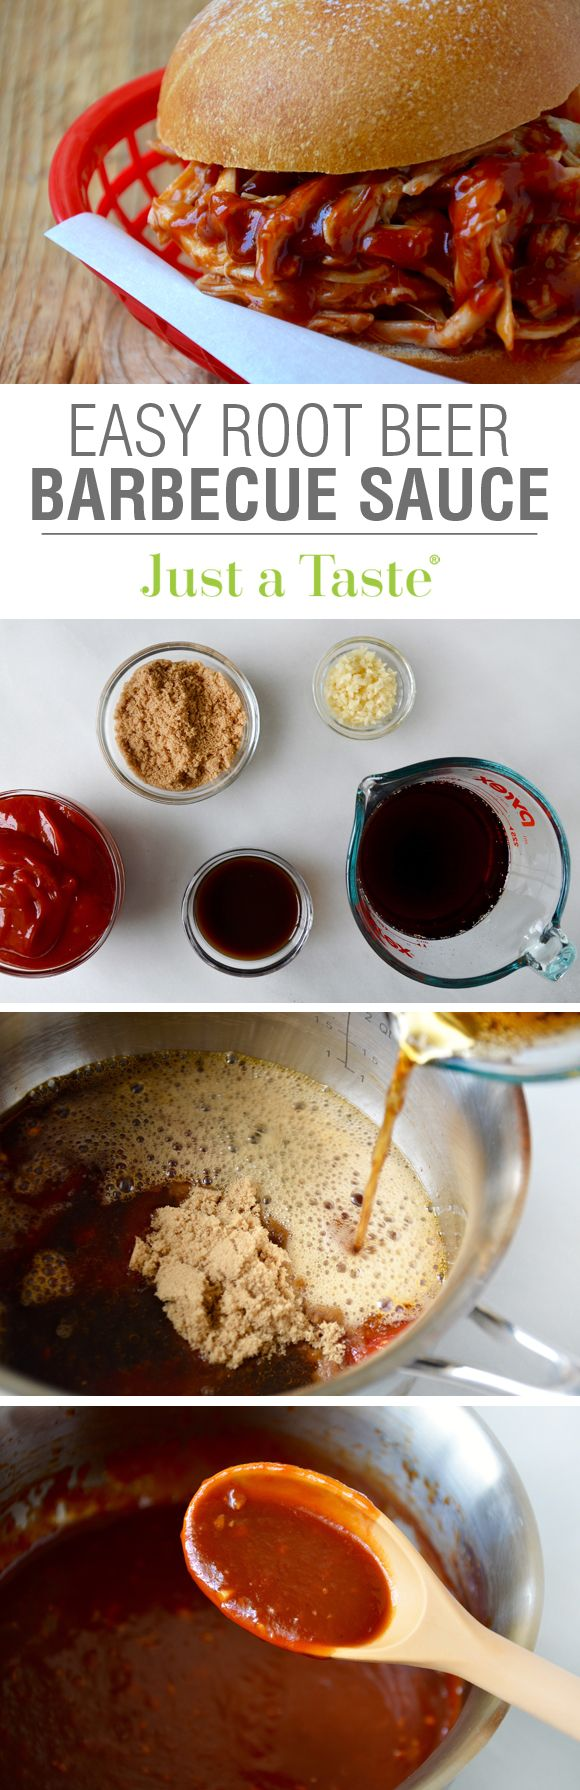 Easy Homemade Root Beer Barbecue Sauce #recipe from justataste.com